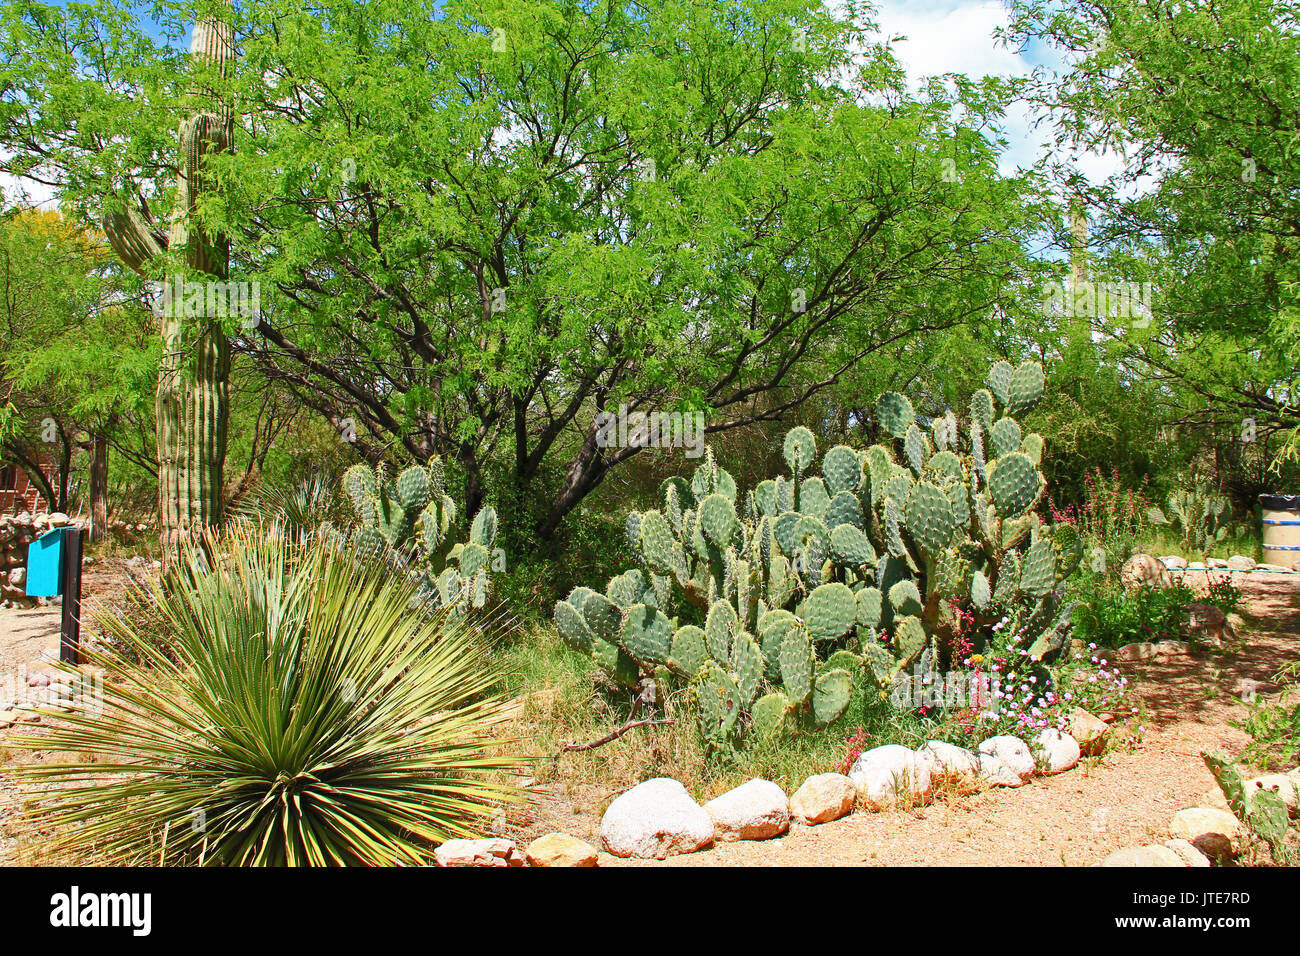 Butterfly garden on the La Posta Quemada Ranch in Colossal Cave Mountain Park in Vail, Arizona, USA near Tucson. - Stock Image